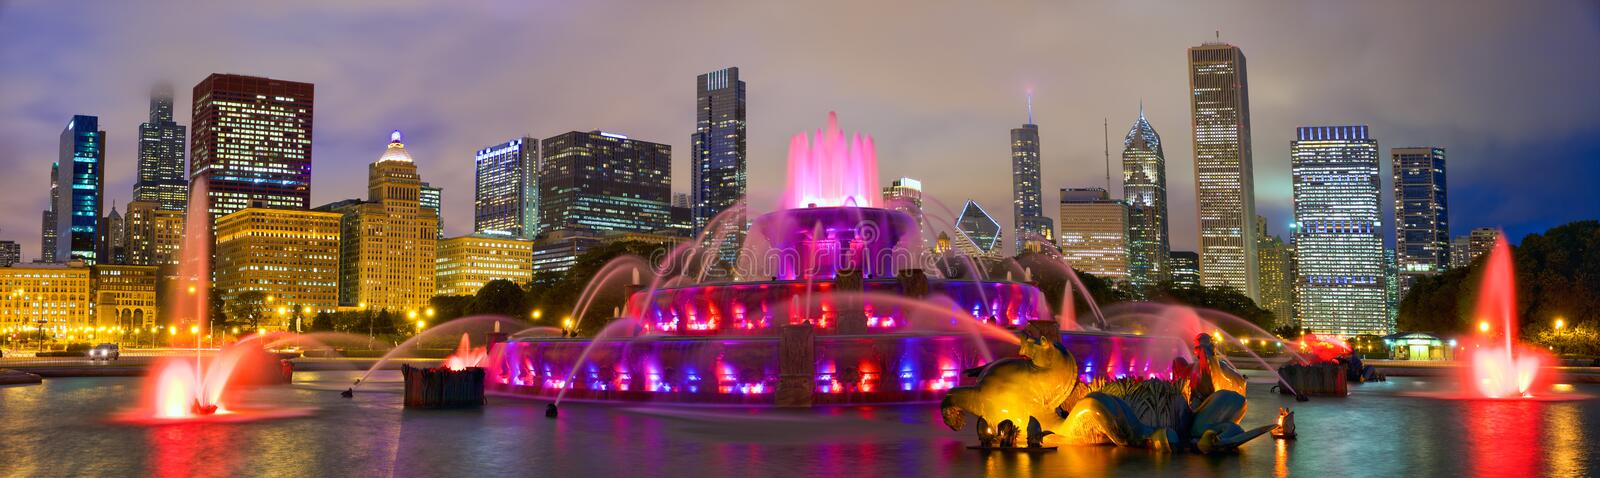 Chicago-Skyline und Buckingham Brunnen stockbild